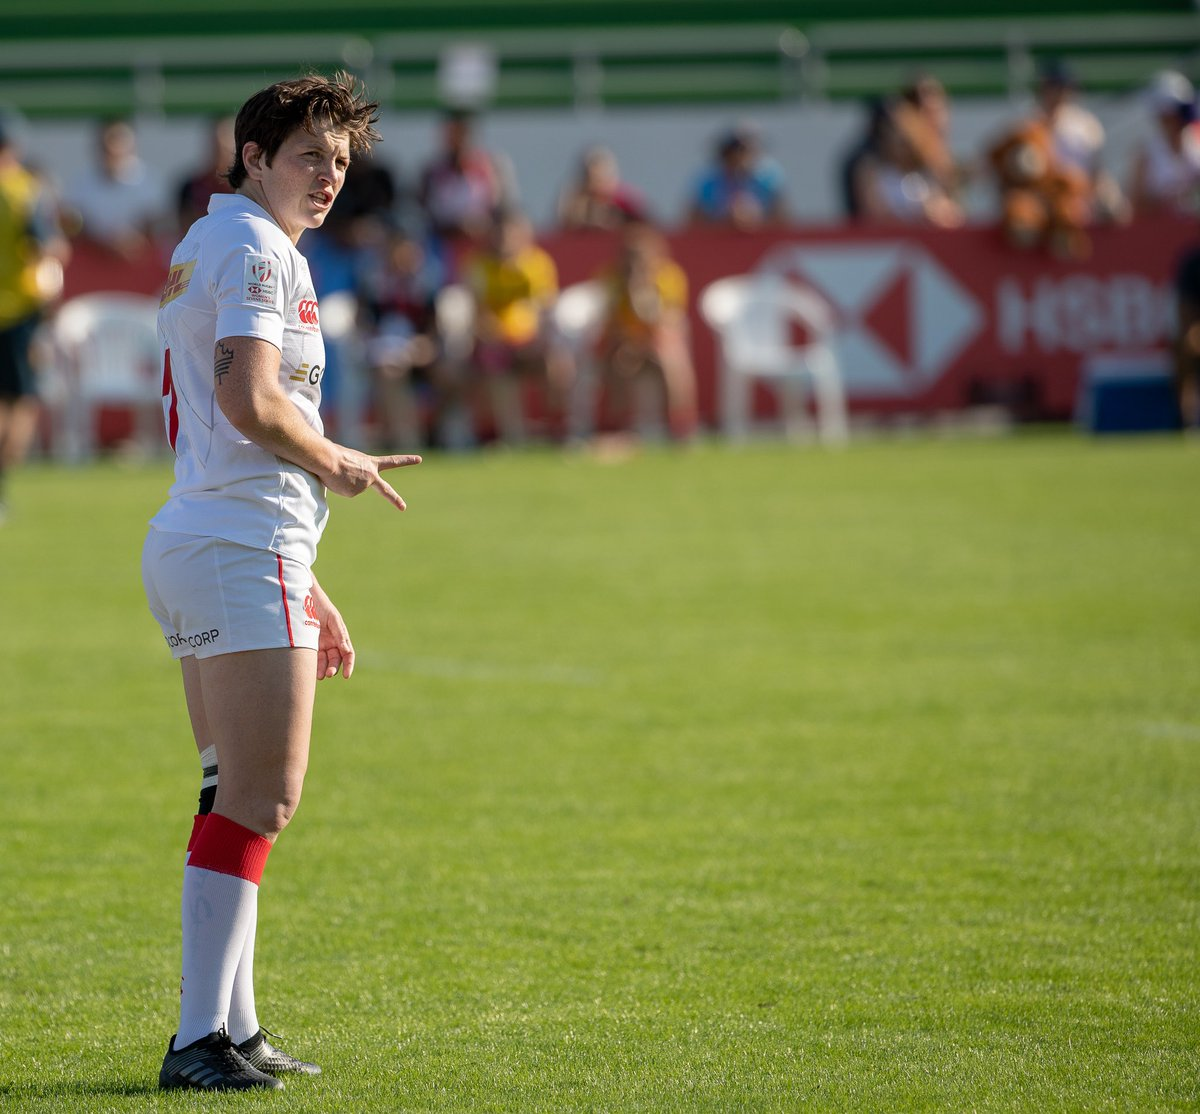 ✌️ weeks until the start of the #HSBC @WorldRugby7s series! Our Womens 7s will kickoff their #Olympic year at the #Glendale7s against 🇦🇺, 🇪🇸, and 🇫🇯 in Pool C 🏉🍁 #RugbyCA #RC7s